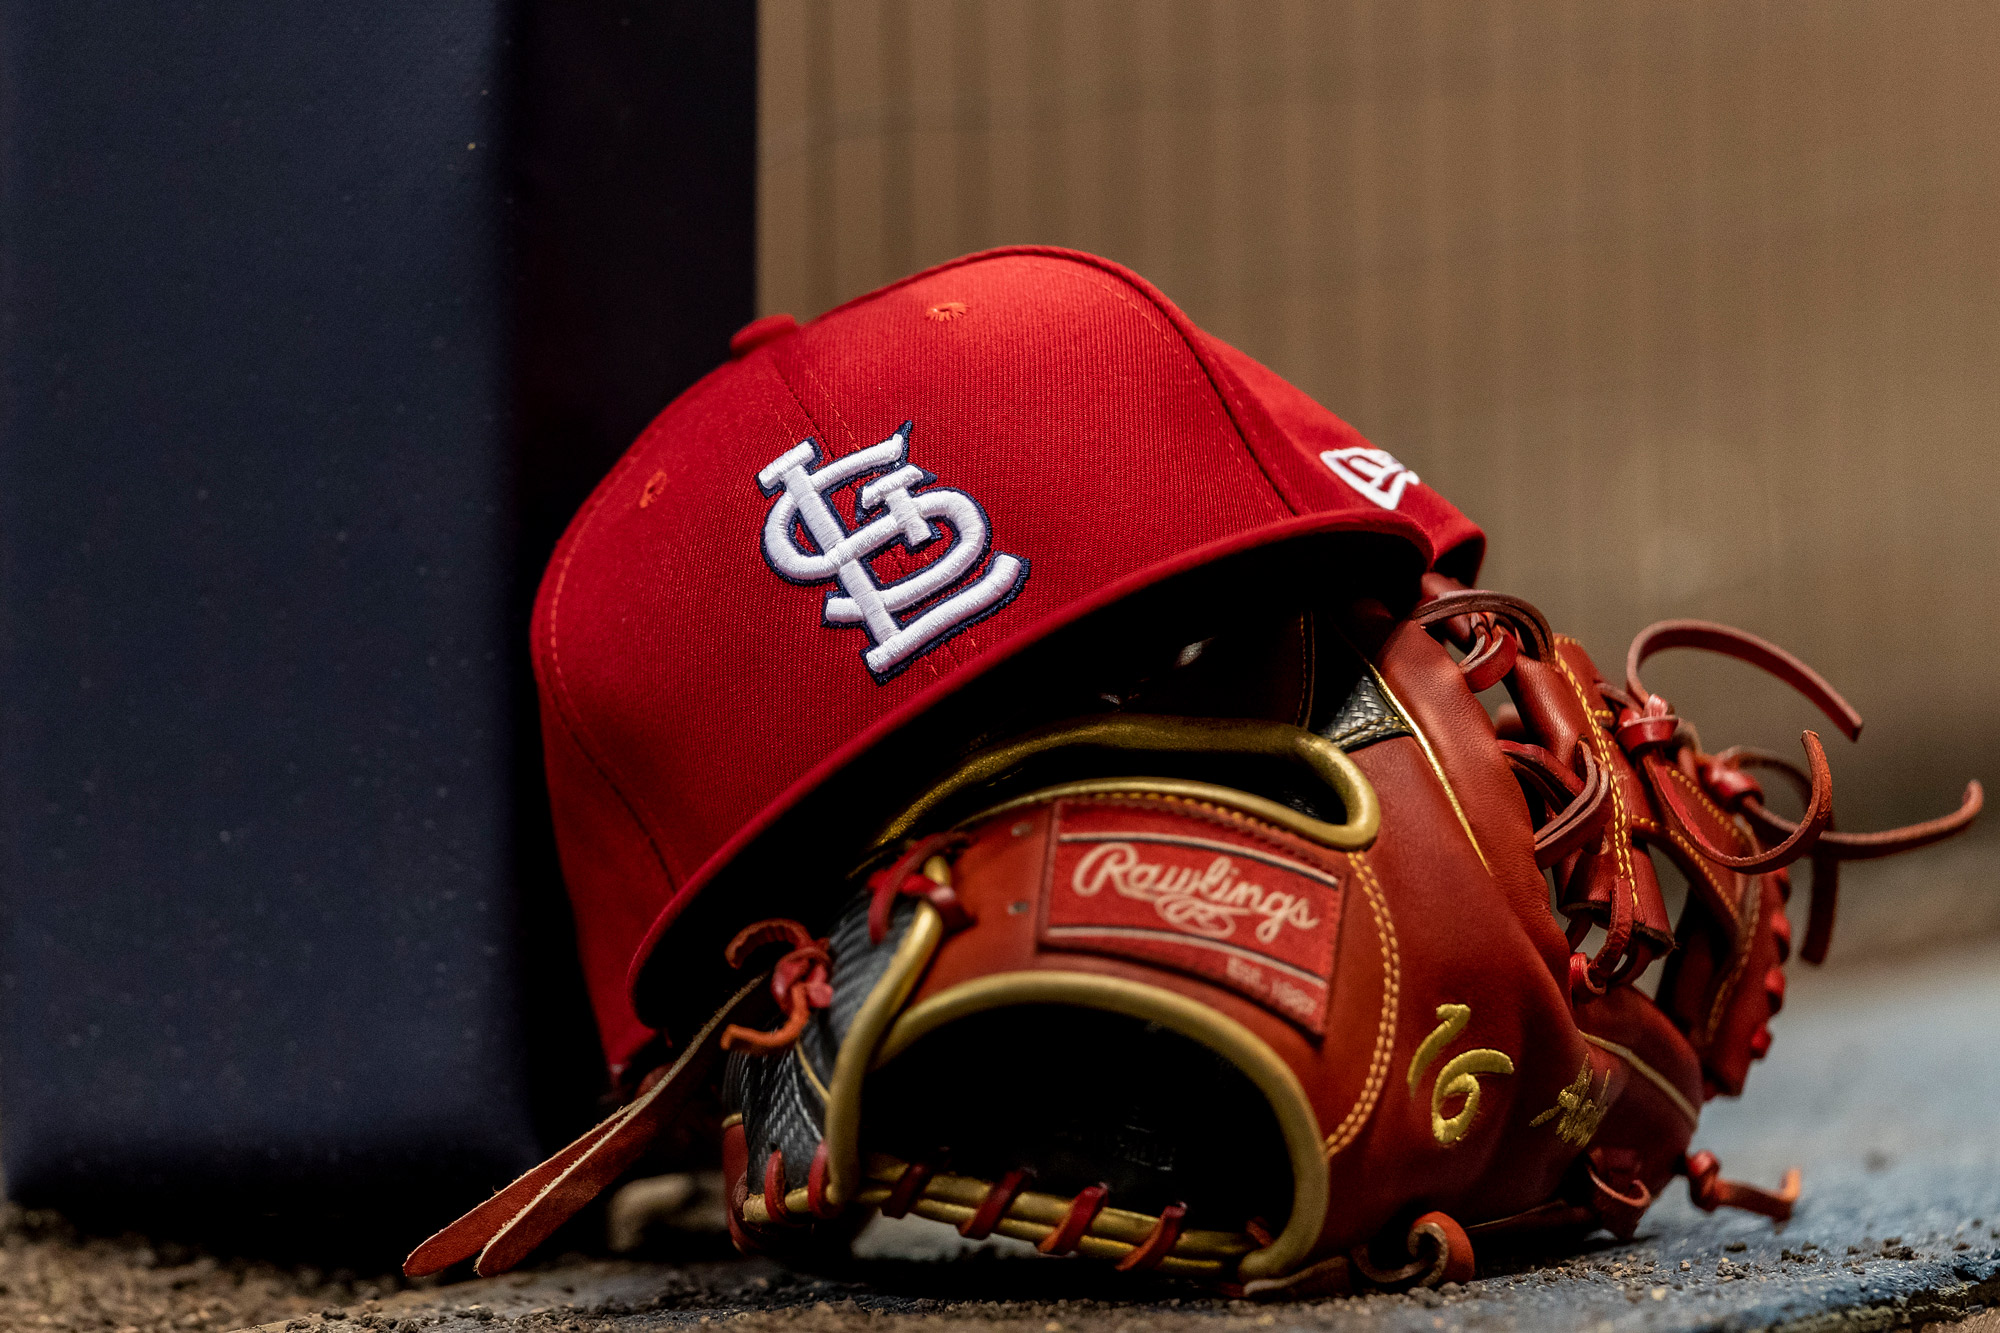 A St. Louis Cardinals hat and glove sit on the dugout step during a MLB game at Miller Park in Milwaukee, Wisconsin, on March 29, 2019.